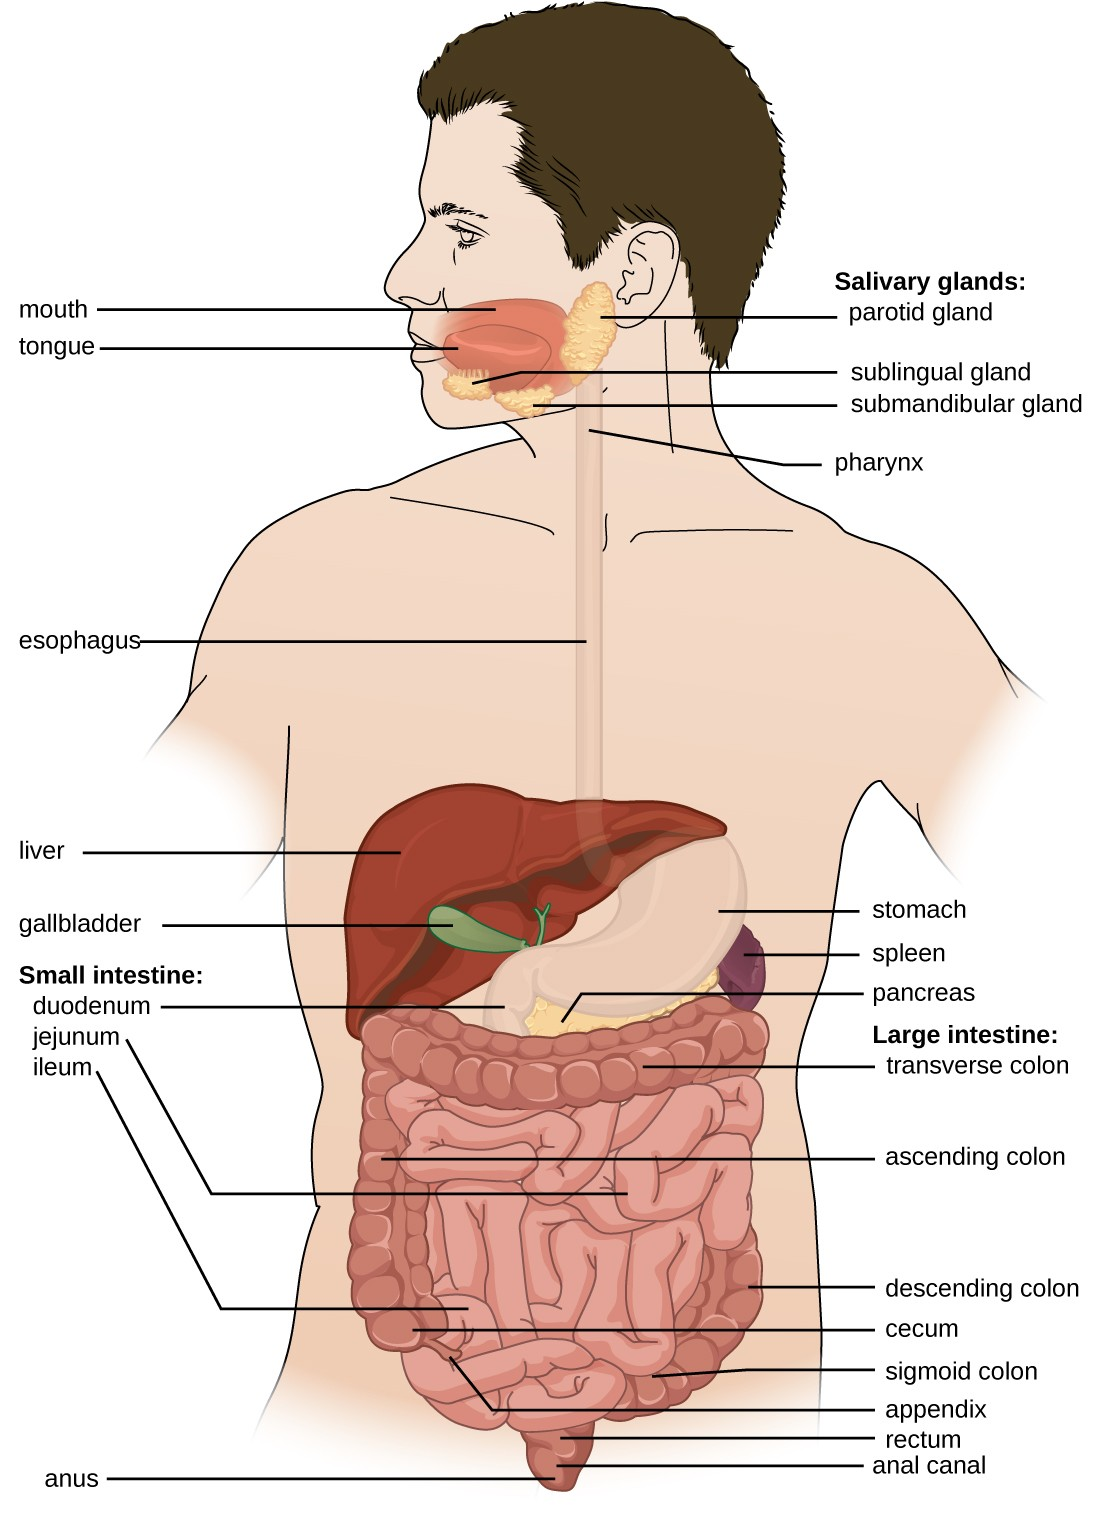 Anatomy And Normal Microbiota Of The Digestive System Microbiology